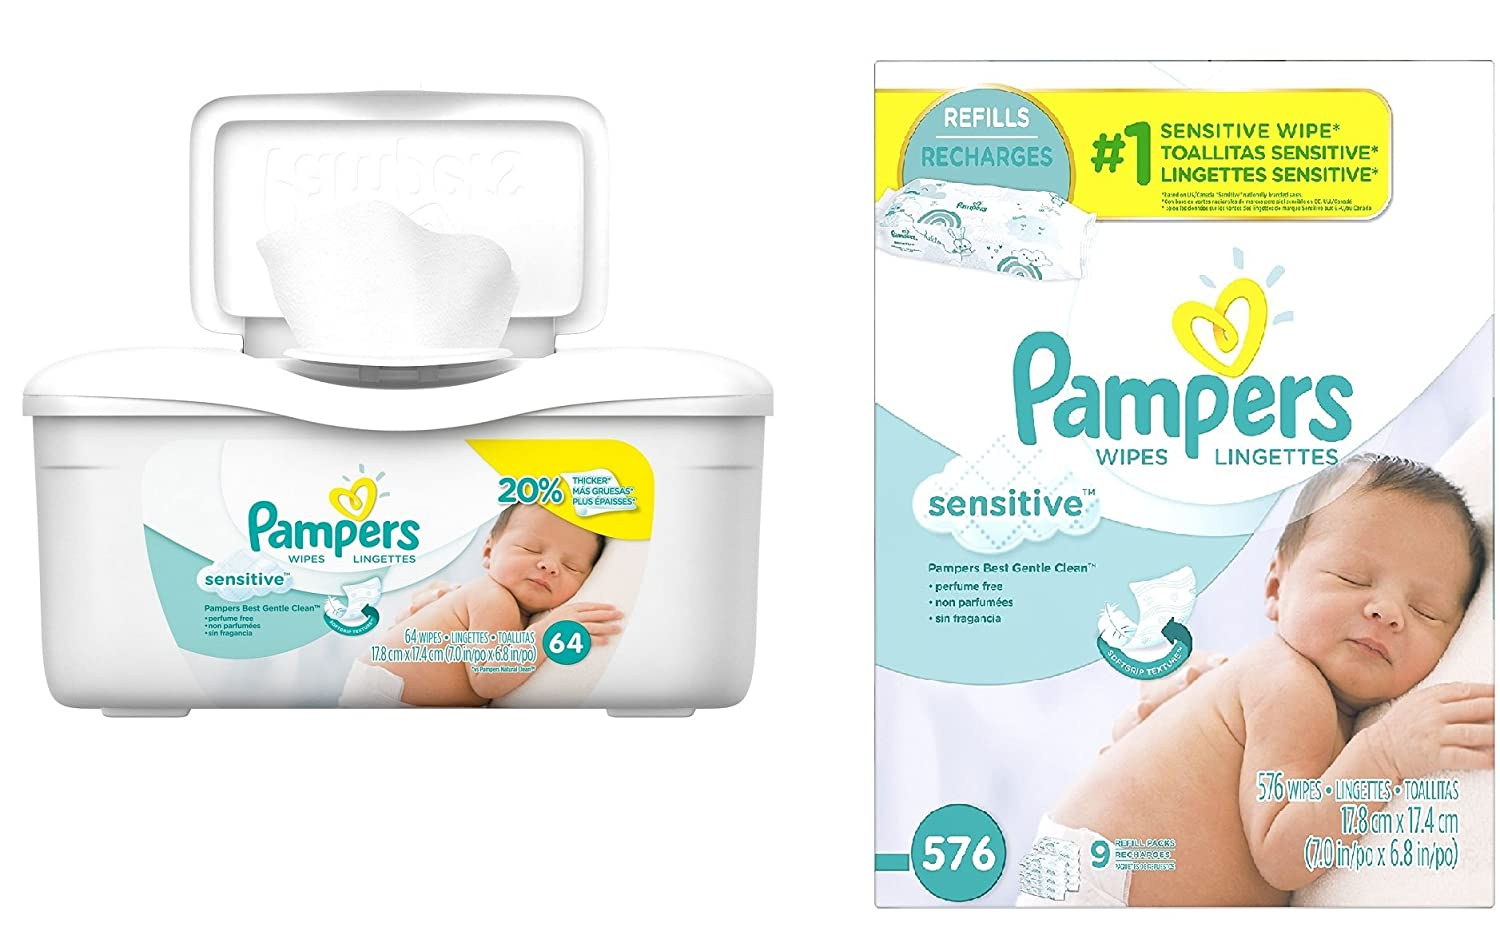 Amazon.com : Pampers Baby Wipes Tub, Sensitive - 64 Wipes/Tub (1Tub/9Refills/640 Count, Sensitive) : Baby